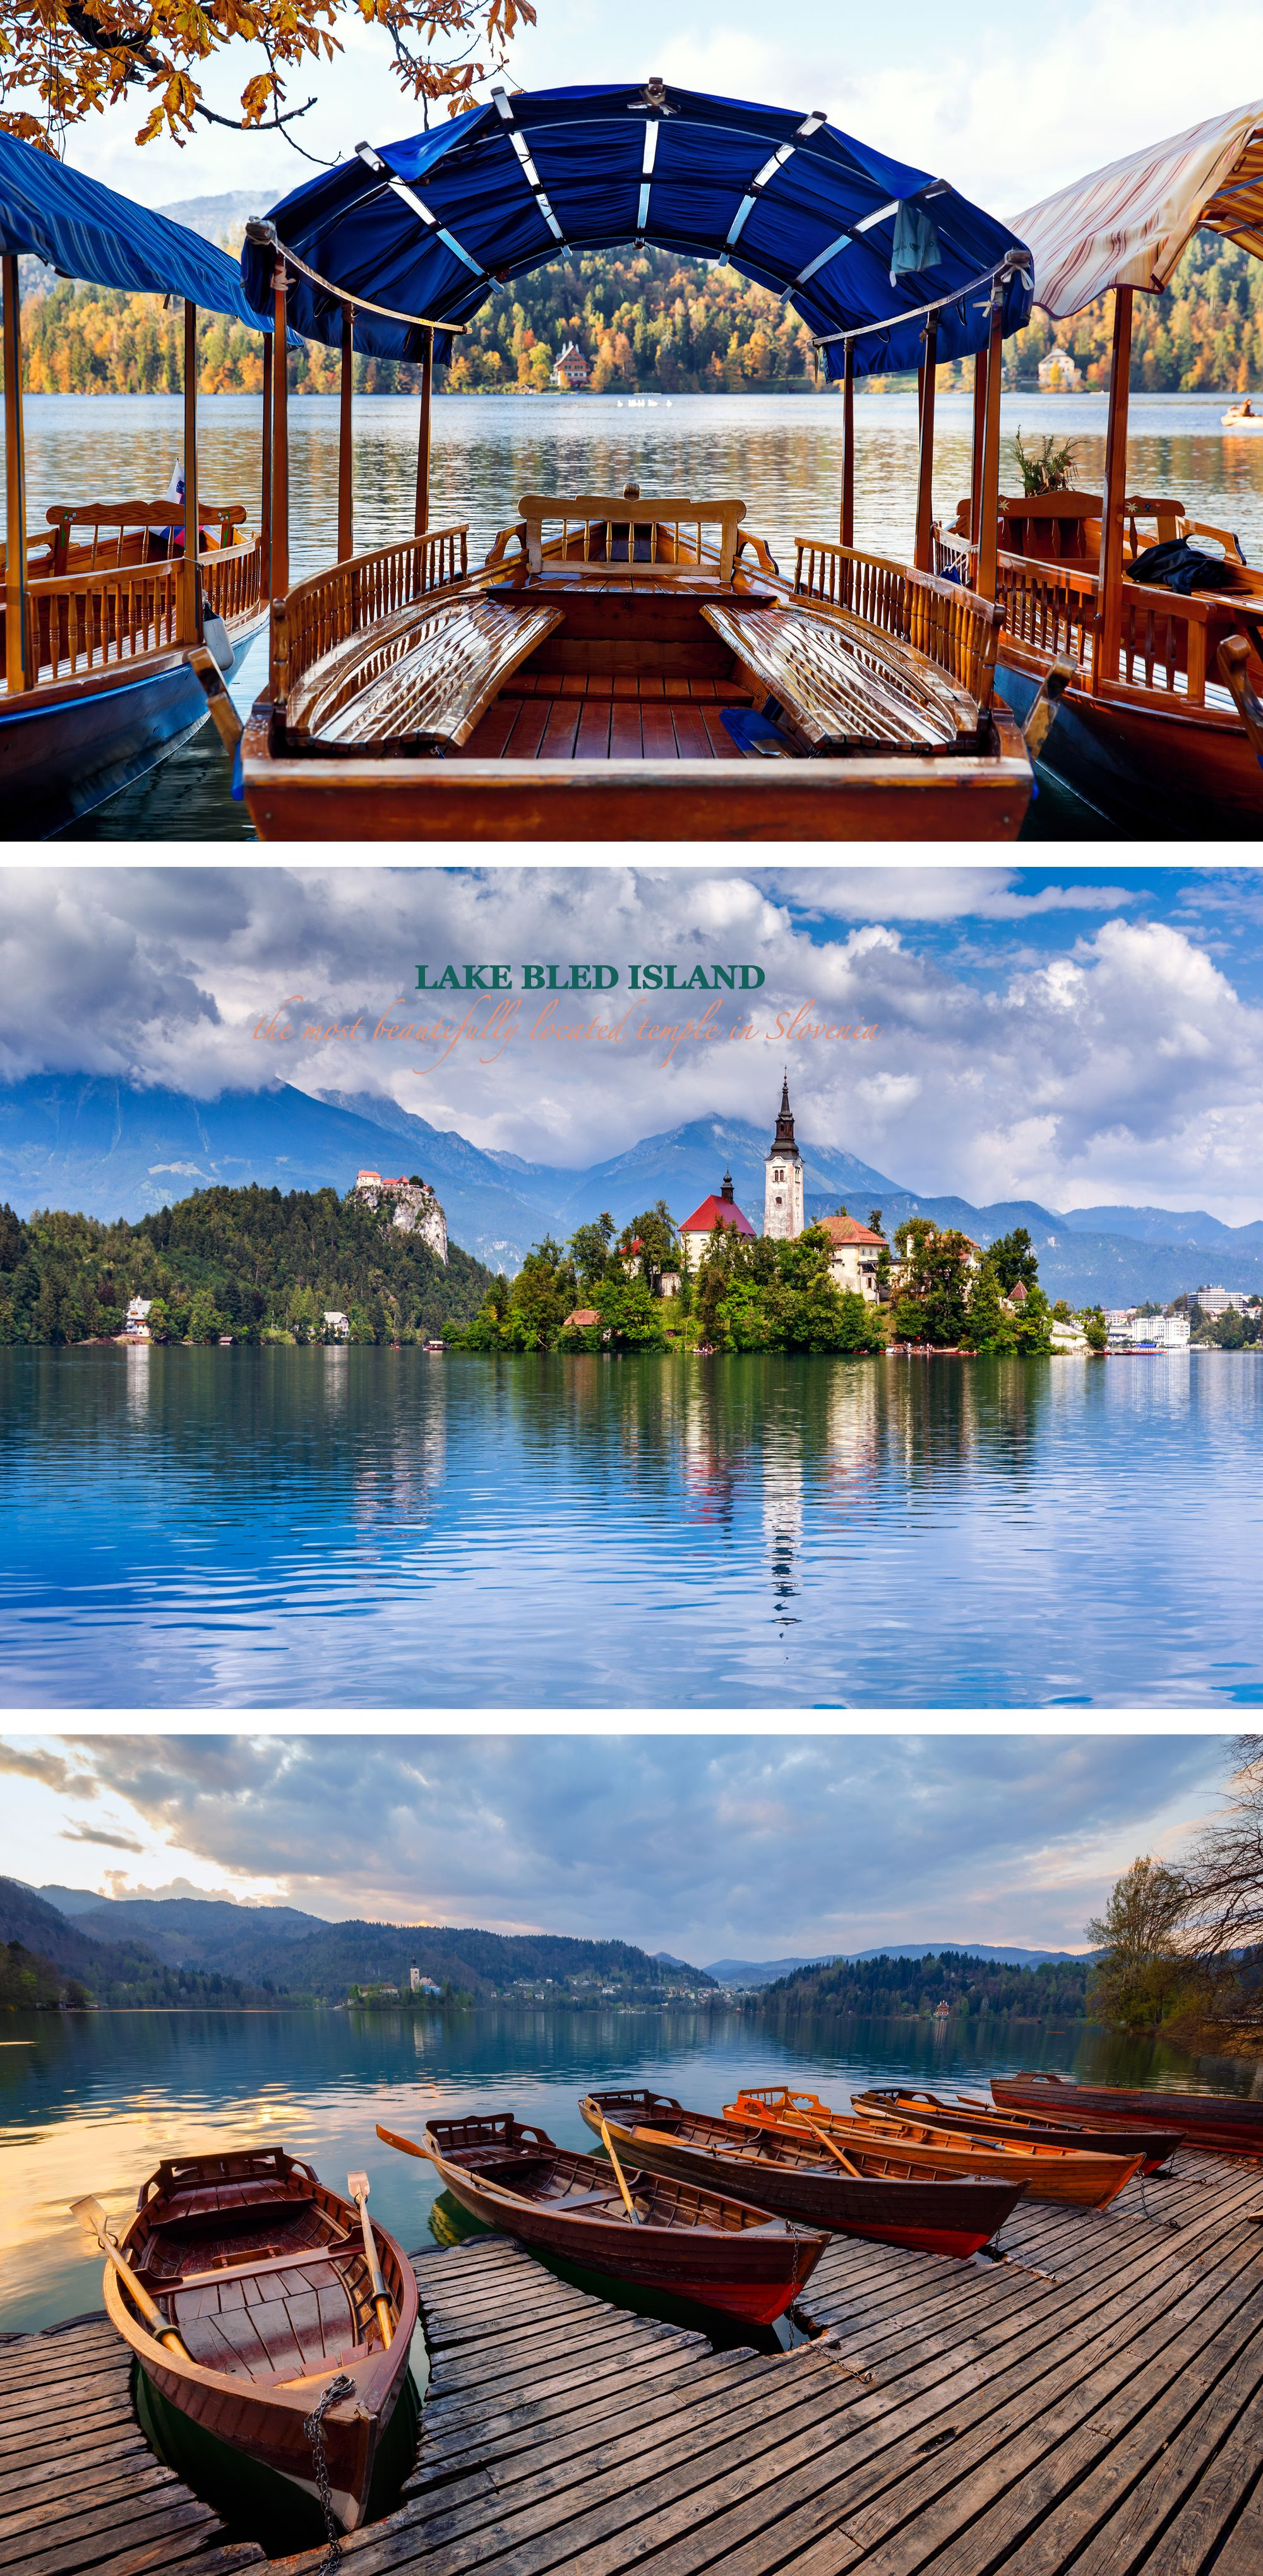 LAKE BLED ISLAND the most beautifully located temple in Slovenia